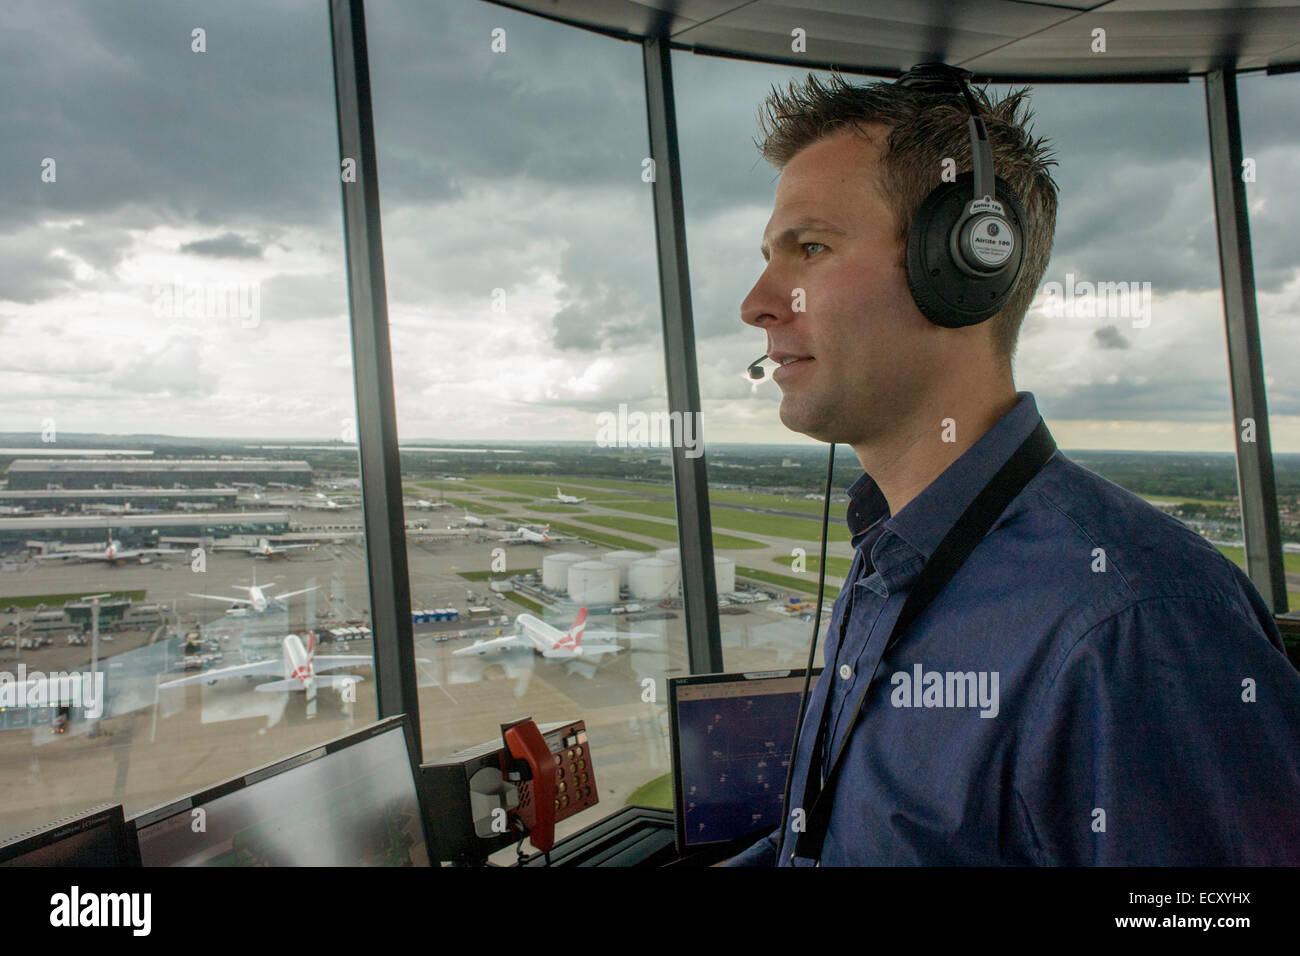 NATS Heathrow air traffic controller in control tower at Heathrow airport, London. - Stock Image